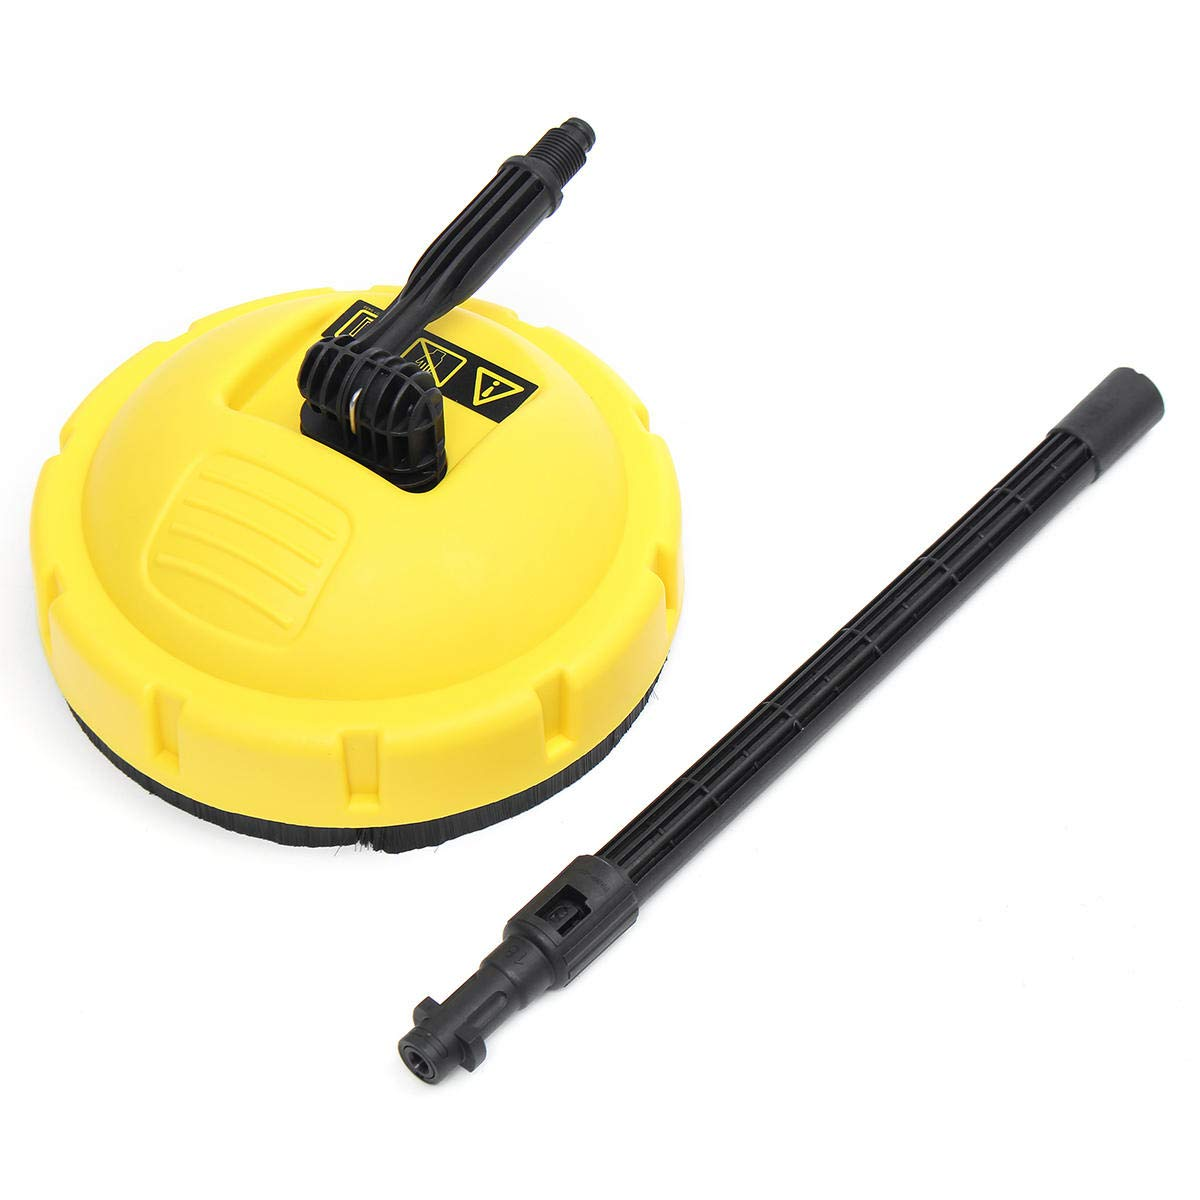 Anddod Pressure Washer rossoary Surface Patio Cleaner Floor Brushing Washing Tool